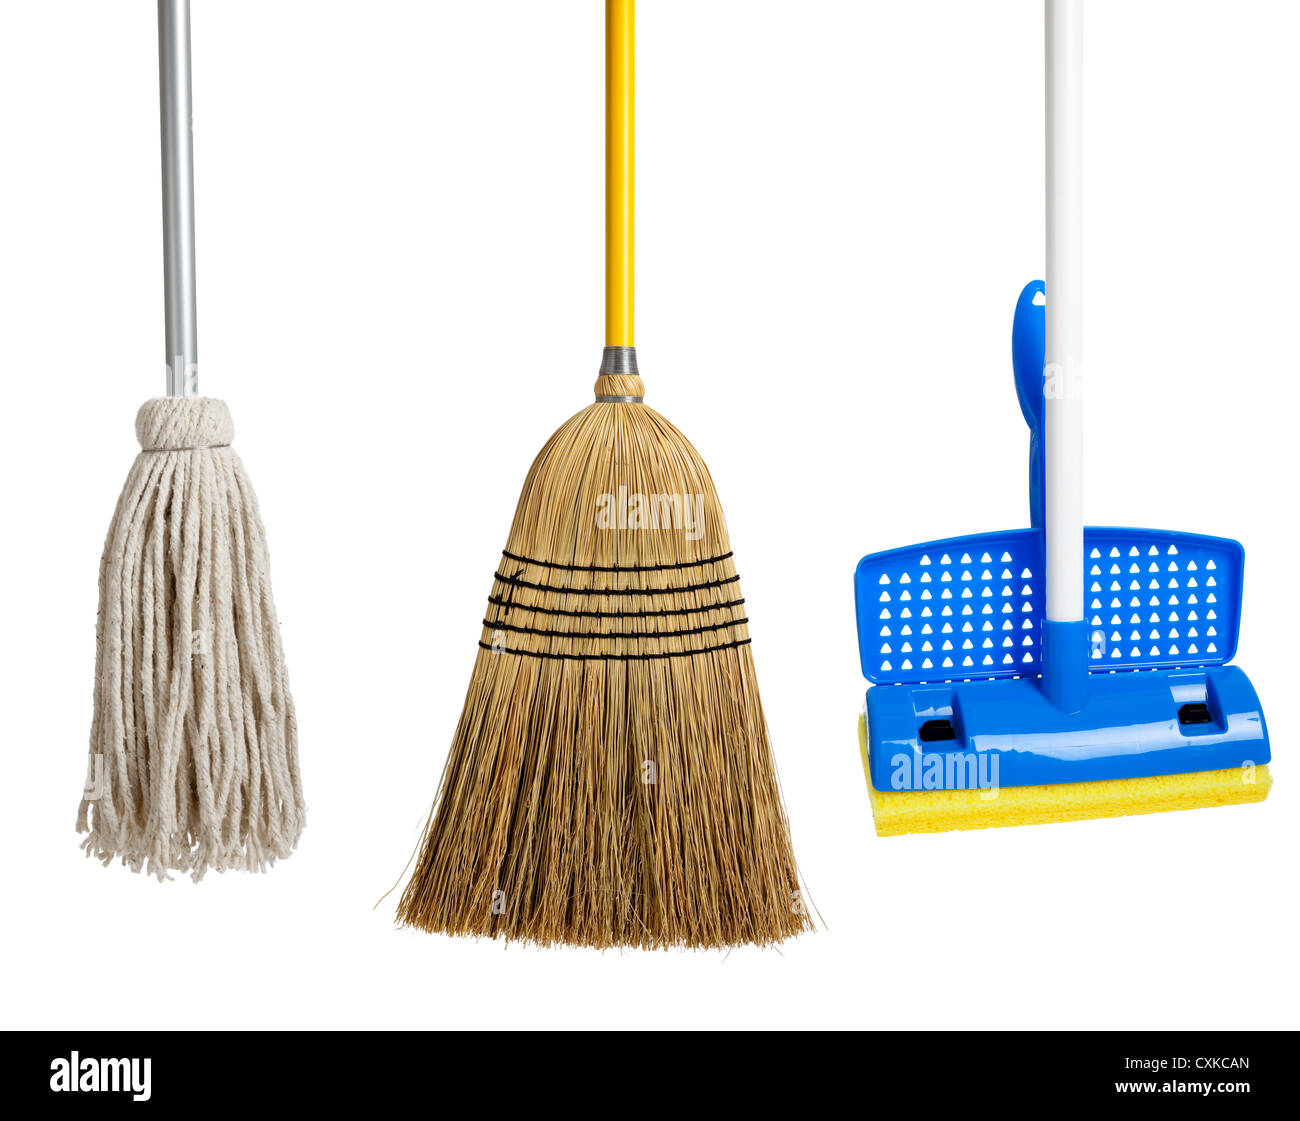 row of String mop, sponge mop and a straw broom - Stock Image